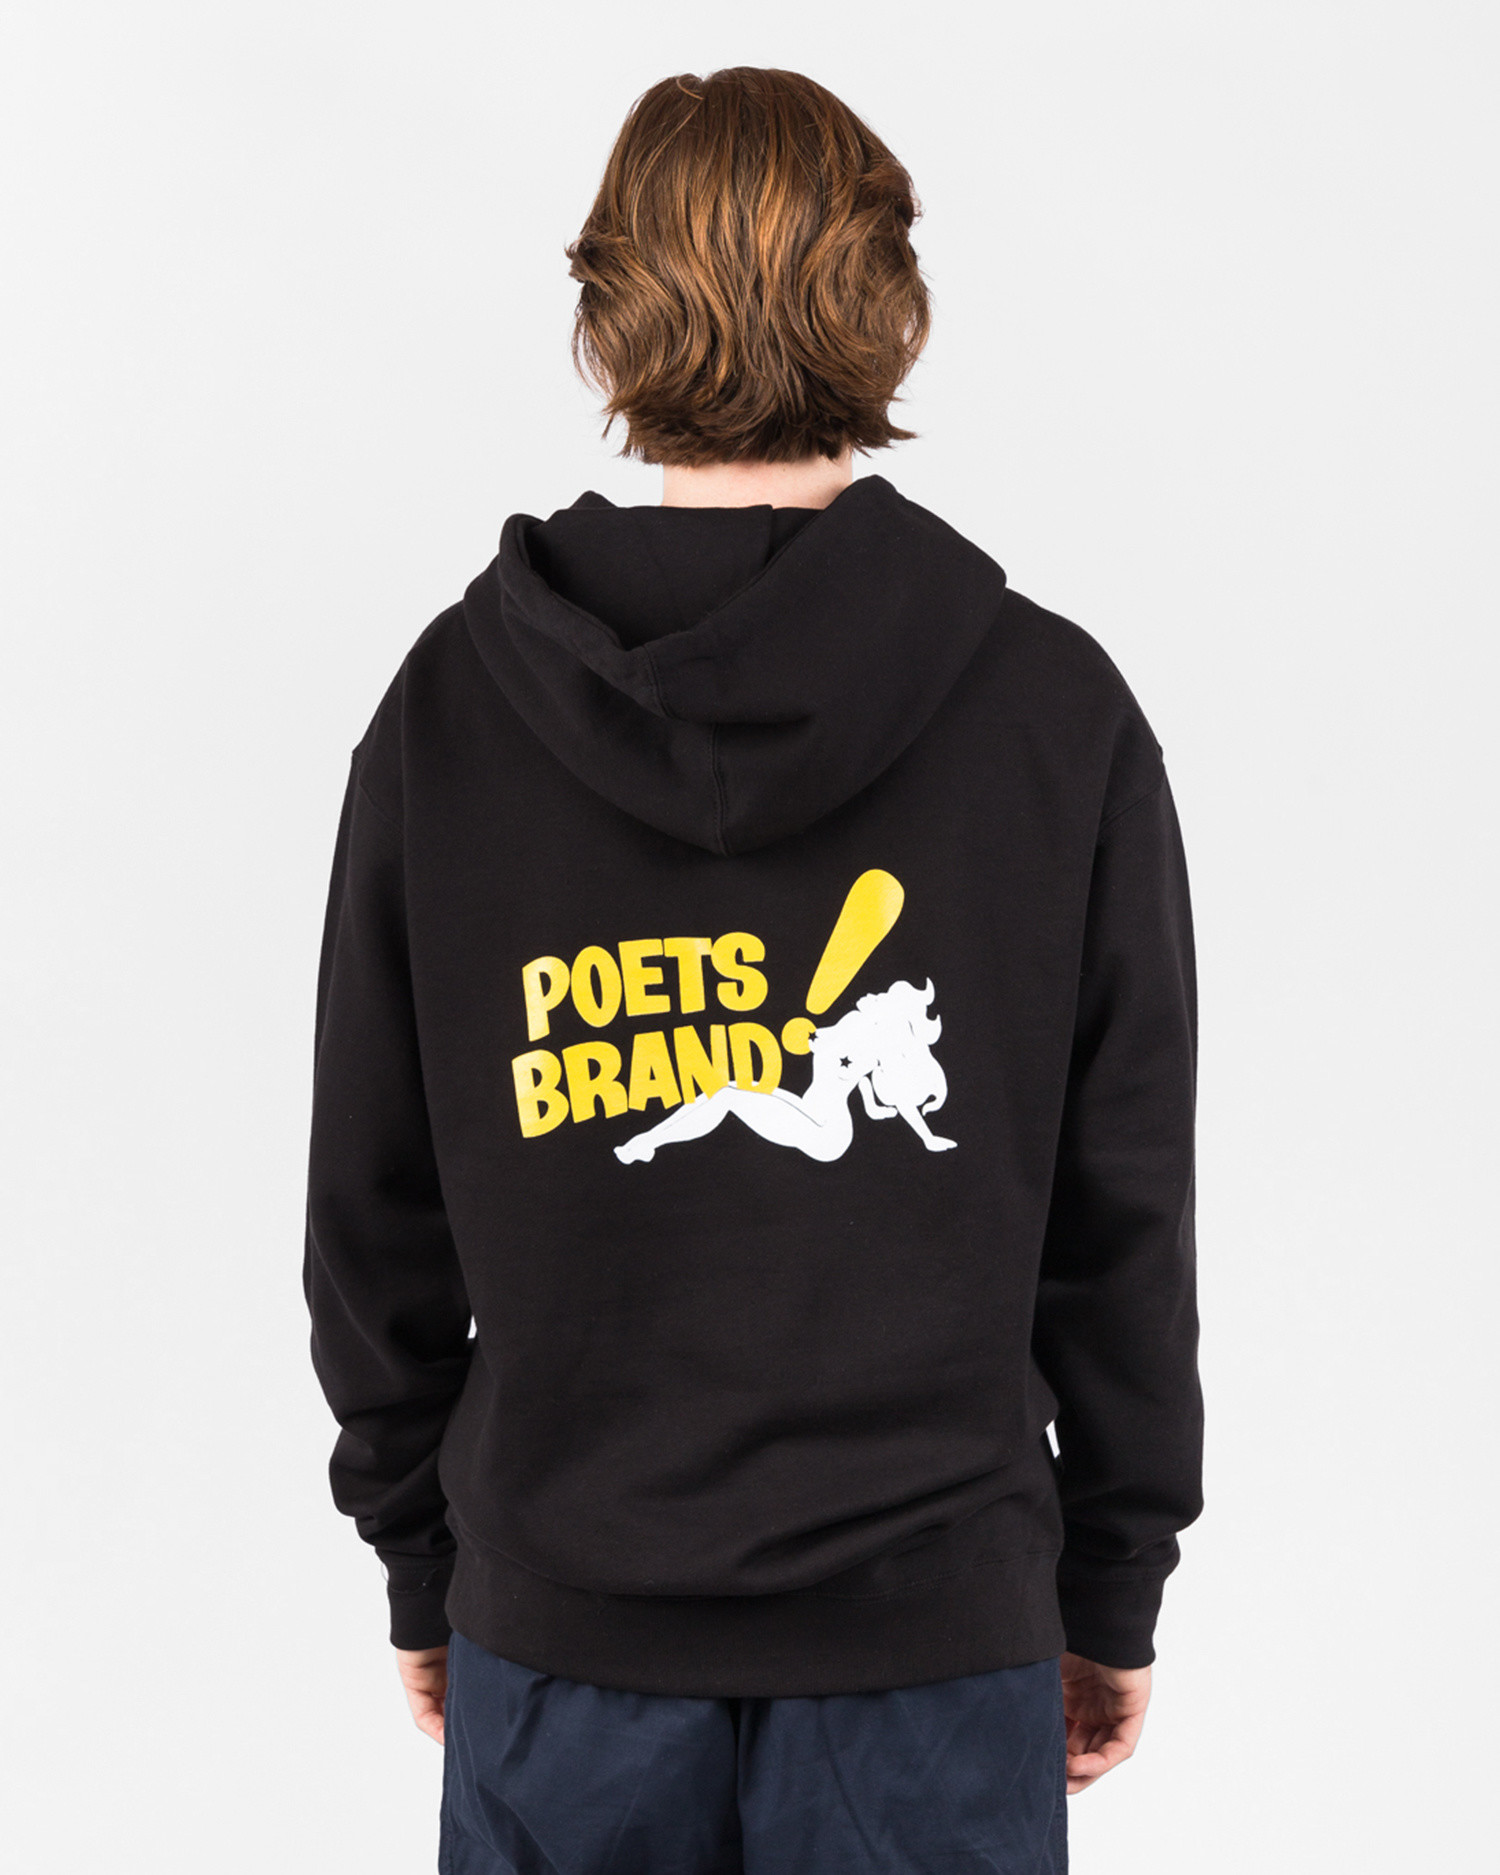 Poets Bing! Hooded Sweater Black